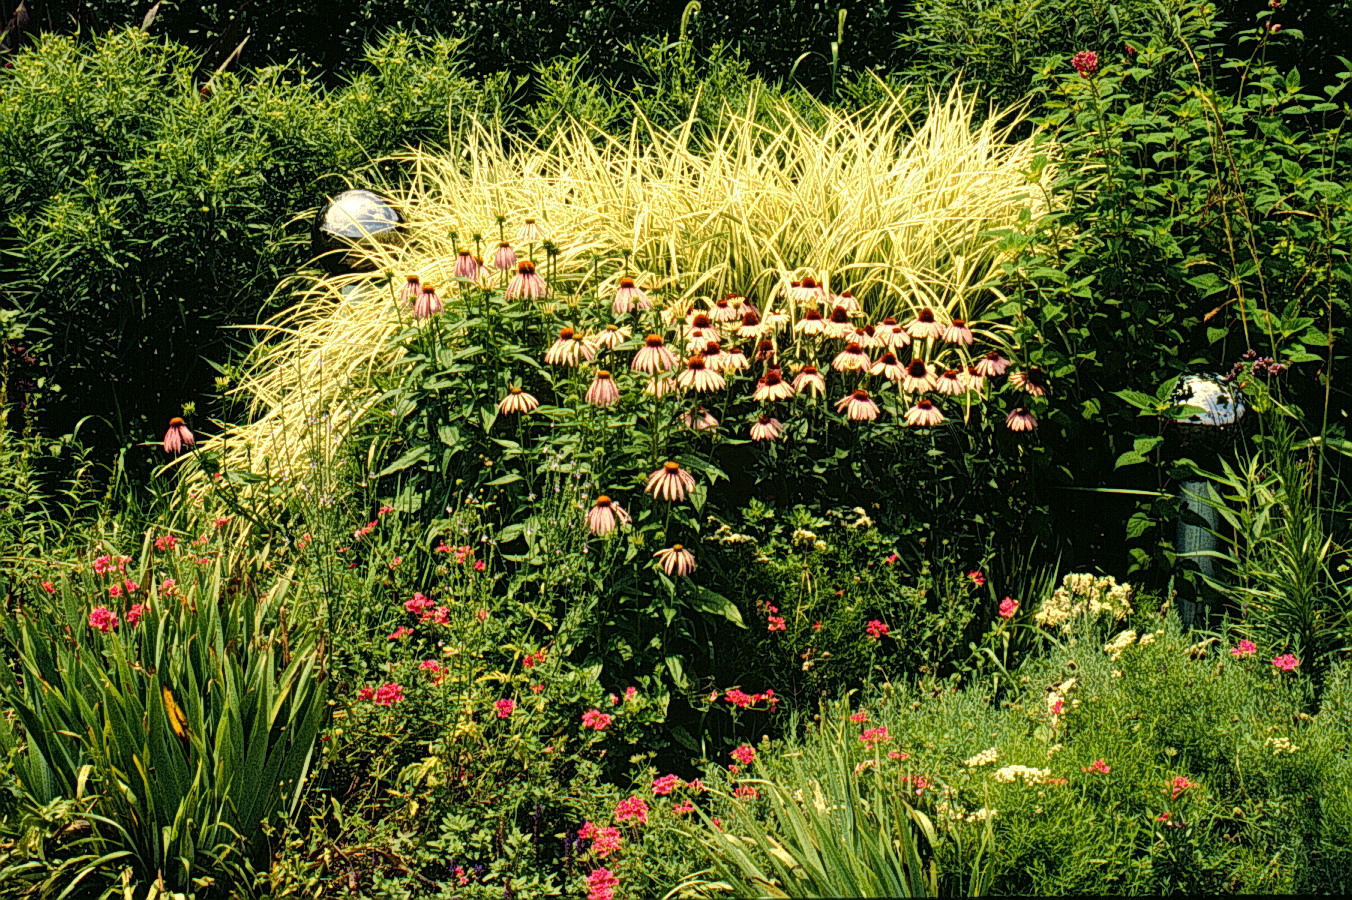 Tall Ornamental Grass Varieties An introduction to ornamental grasses and grasslikes for southern an introduction to ornamental grasses and grasslikes for southern gardeners workwithnaturefo